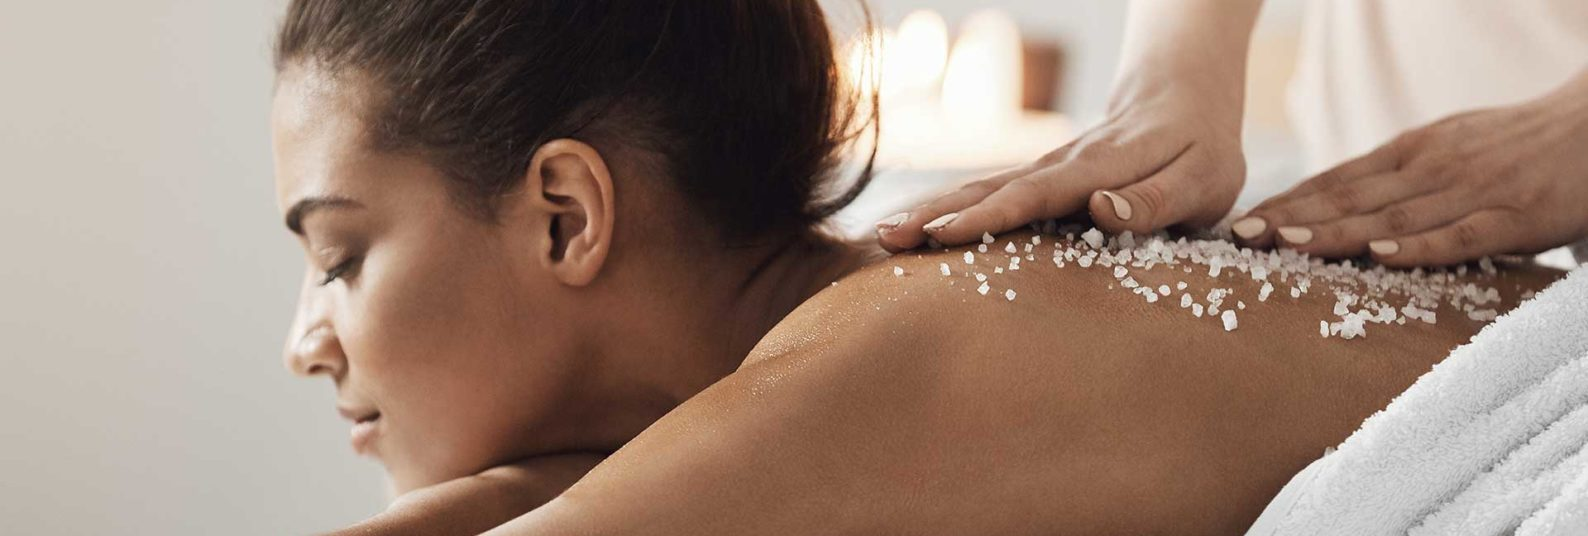 a woman getting a sea salt scrub massage